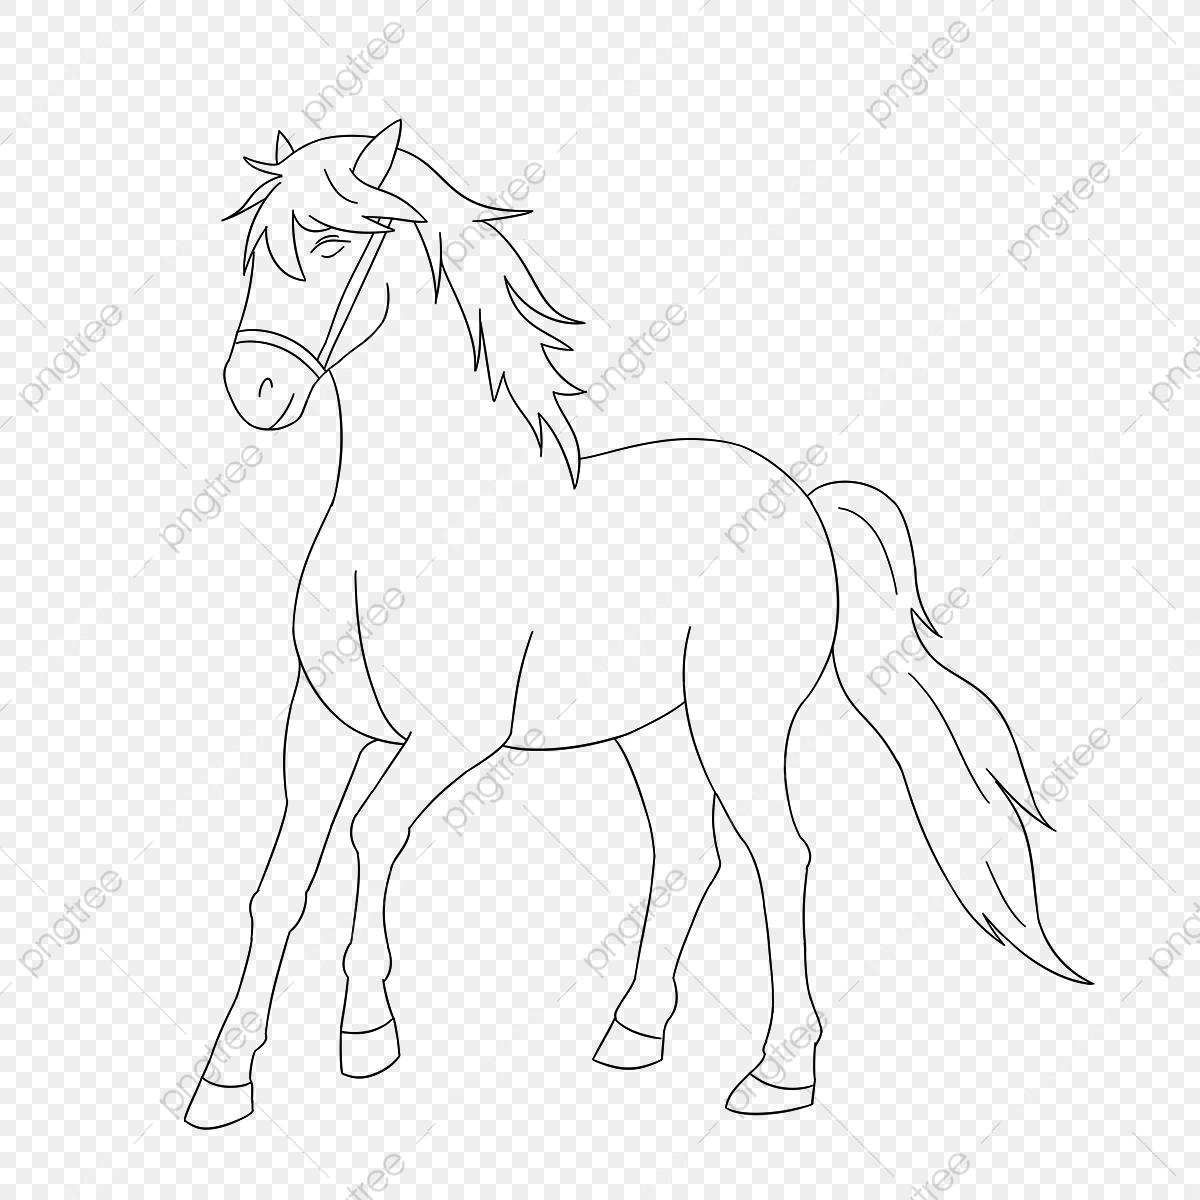 Horse Clipart Black And White Happy Horse Clipart Horse Cartoon Png Transparent Clipart Image And Psd File For Free Download